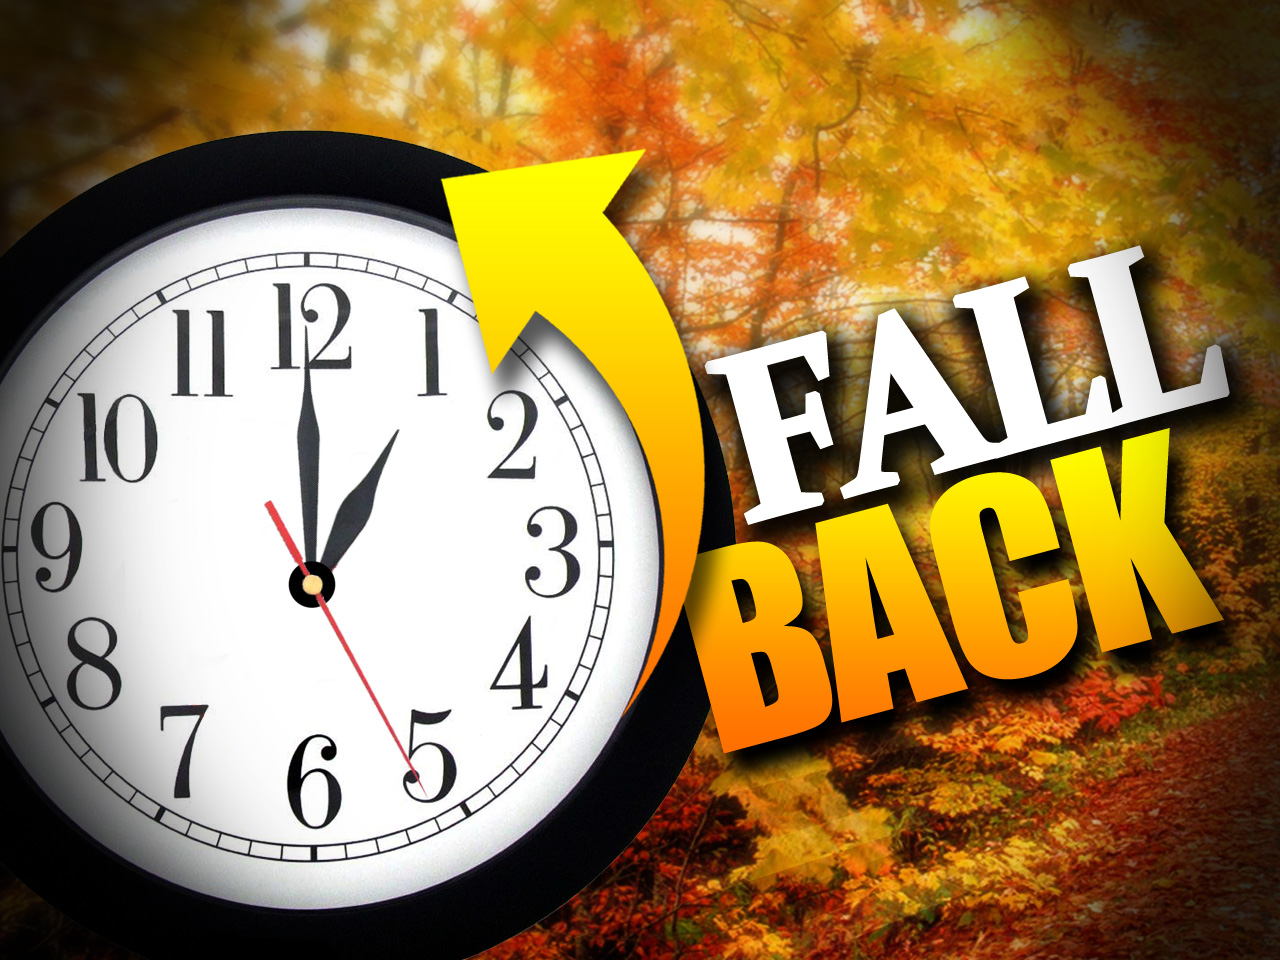 download Daylight Savings Time 2012 Wallpapers Pictures 1280x960